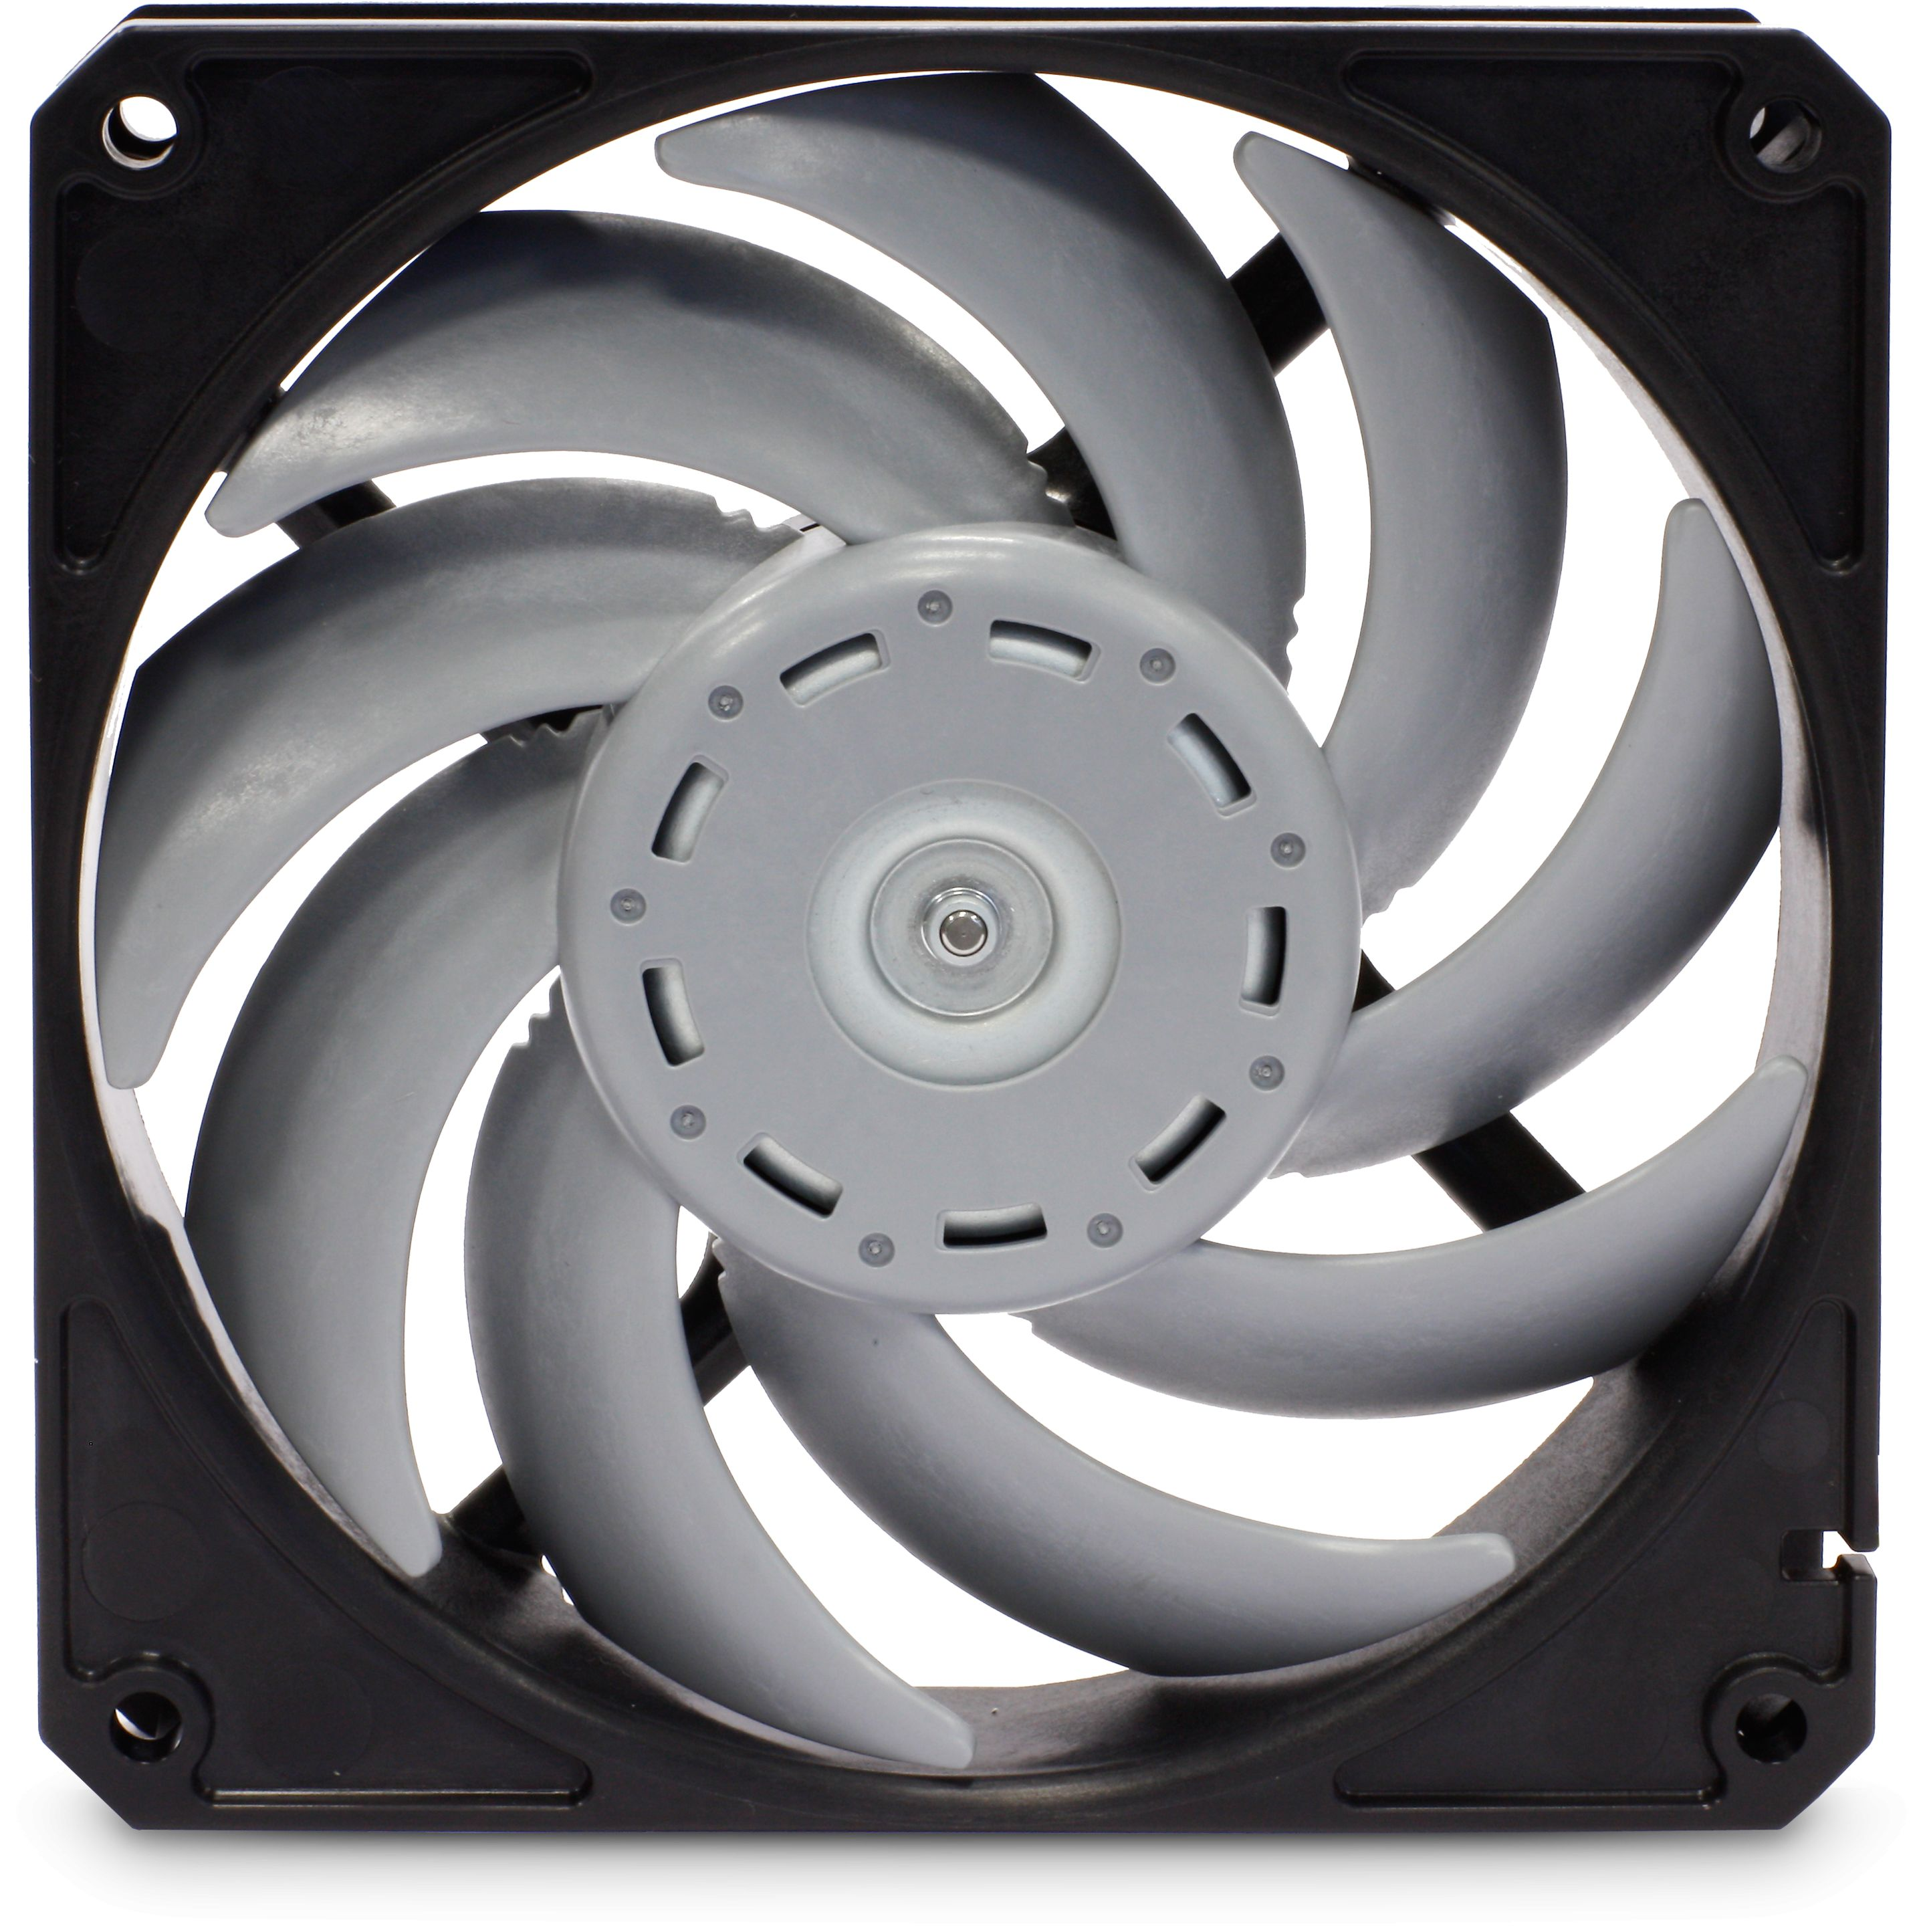 Scythe Gentle Typhoon 120mm 1850 RPM Cooling Fan #726659